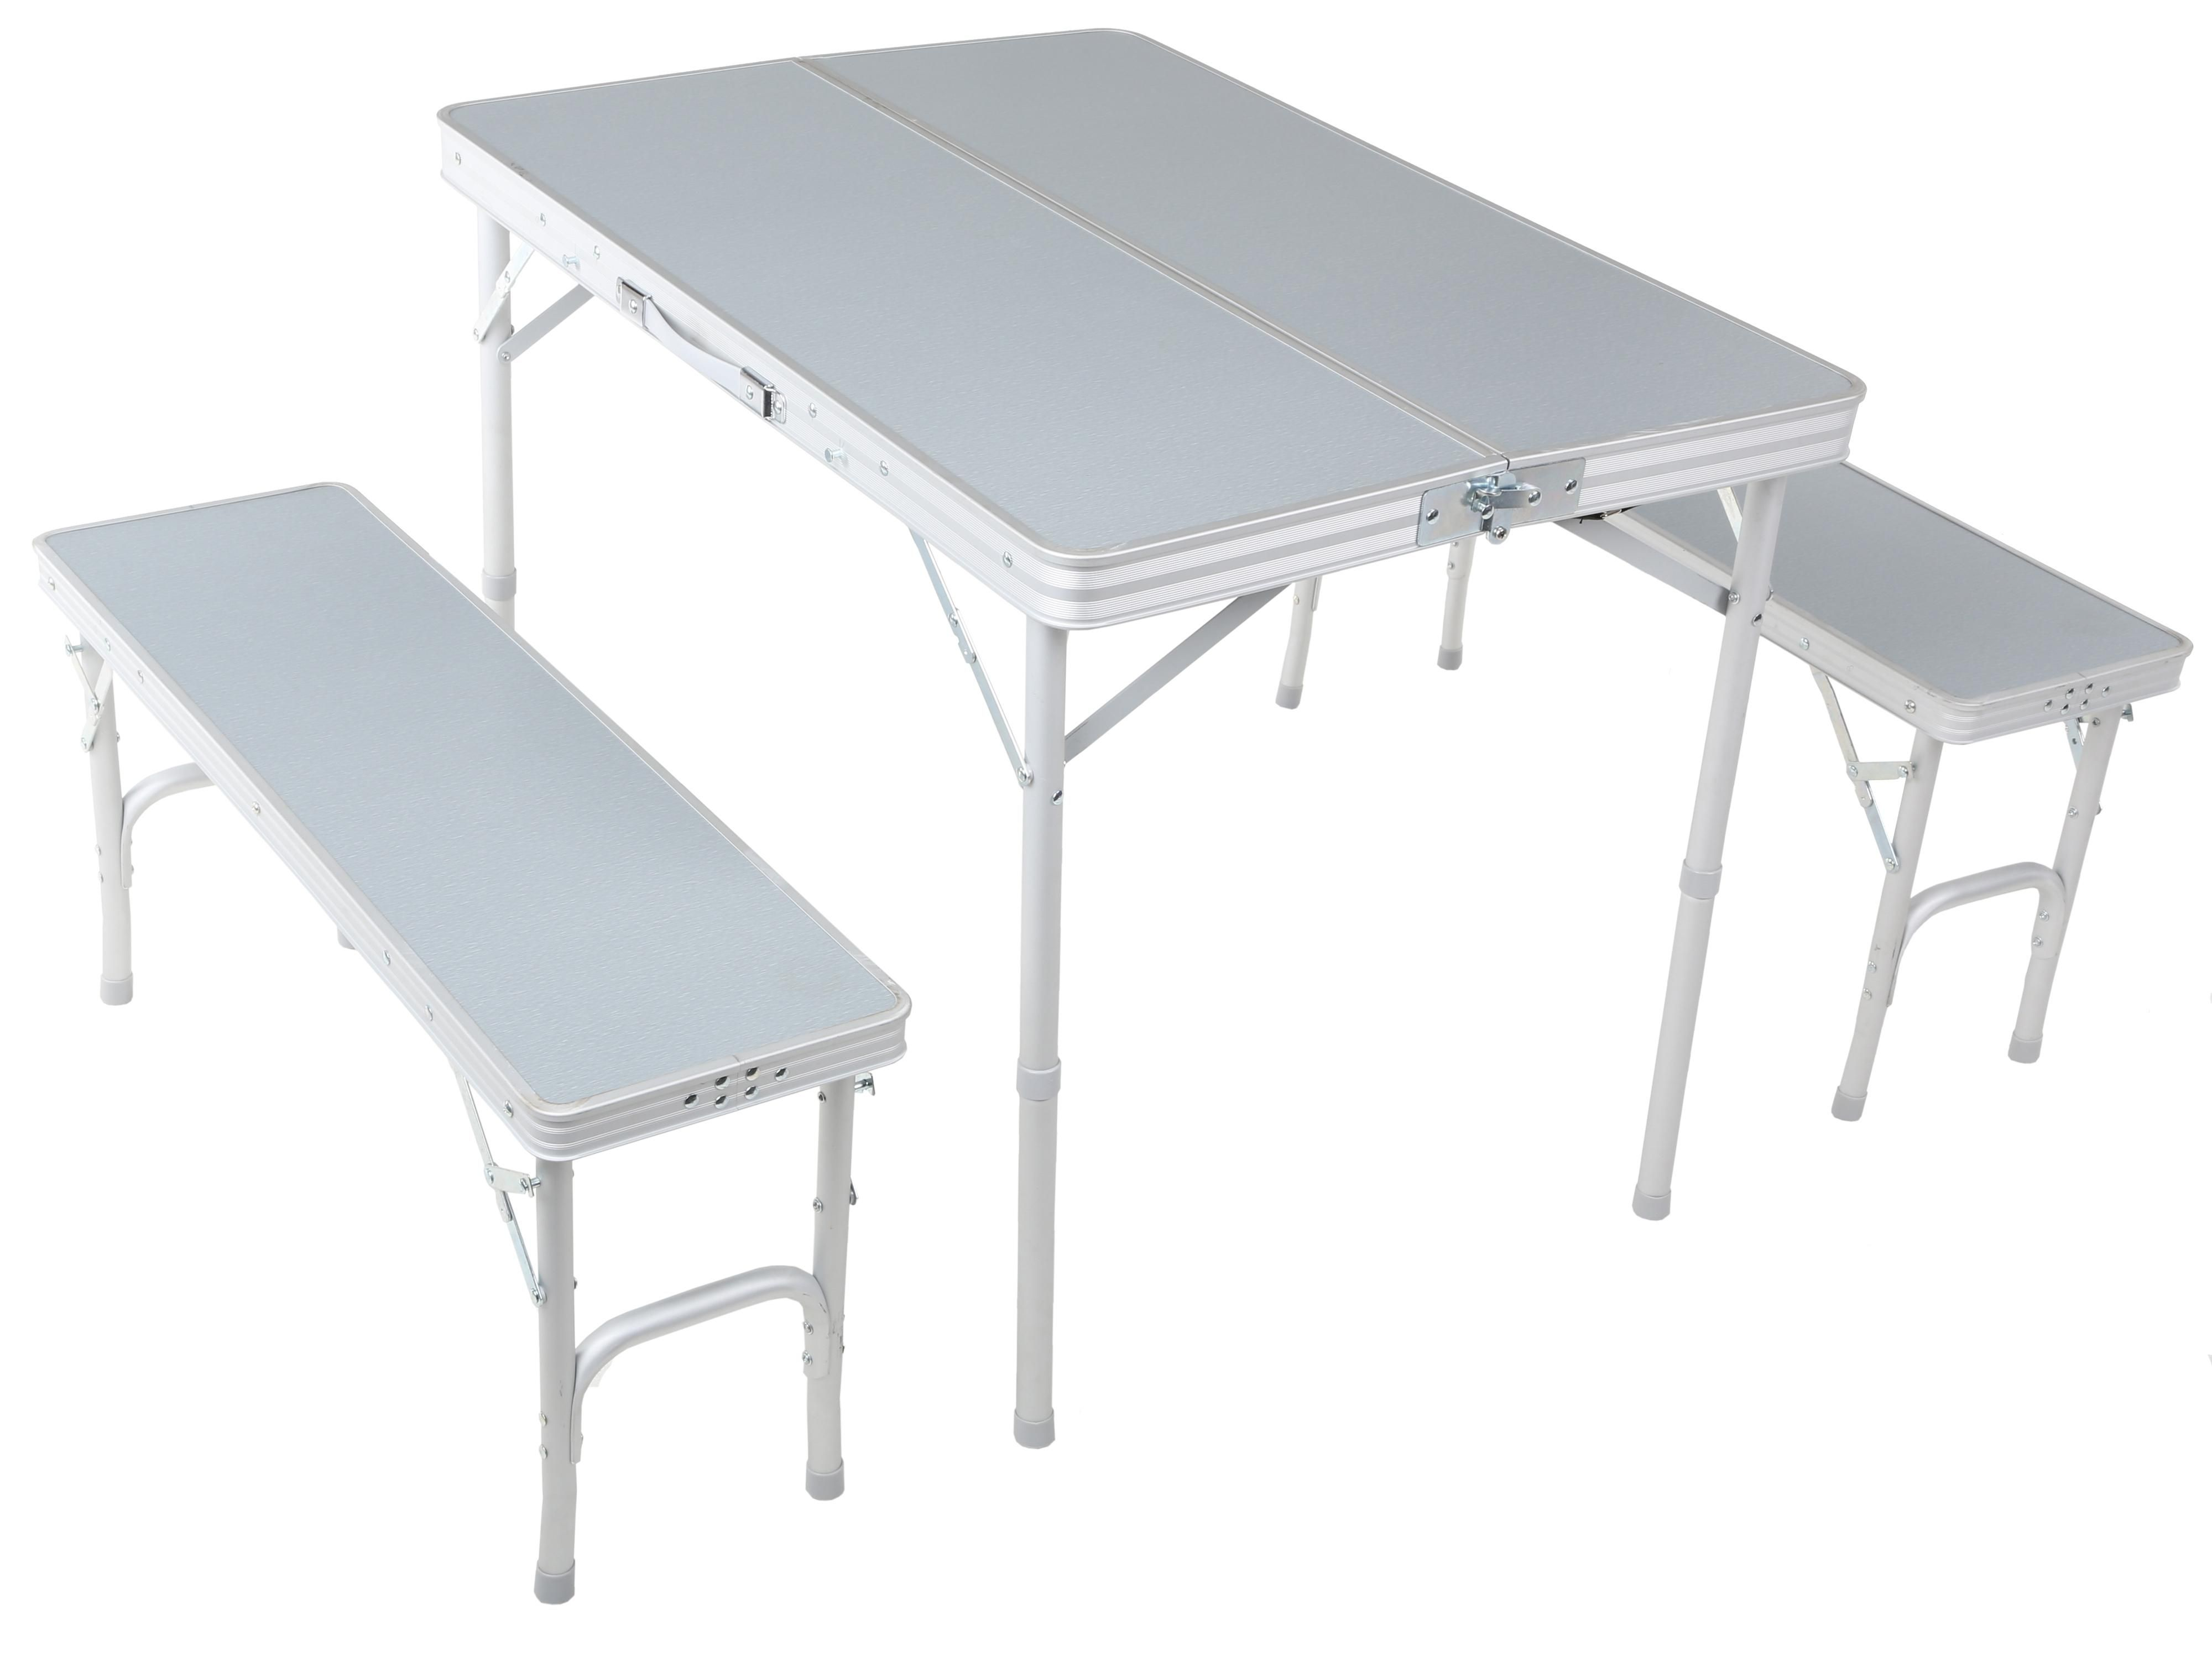 Fold Away Camping Table